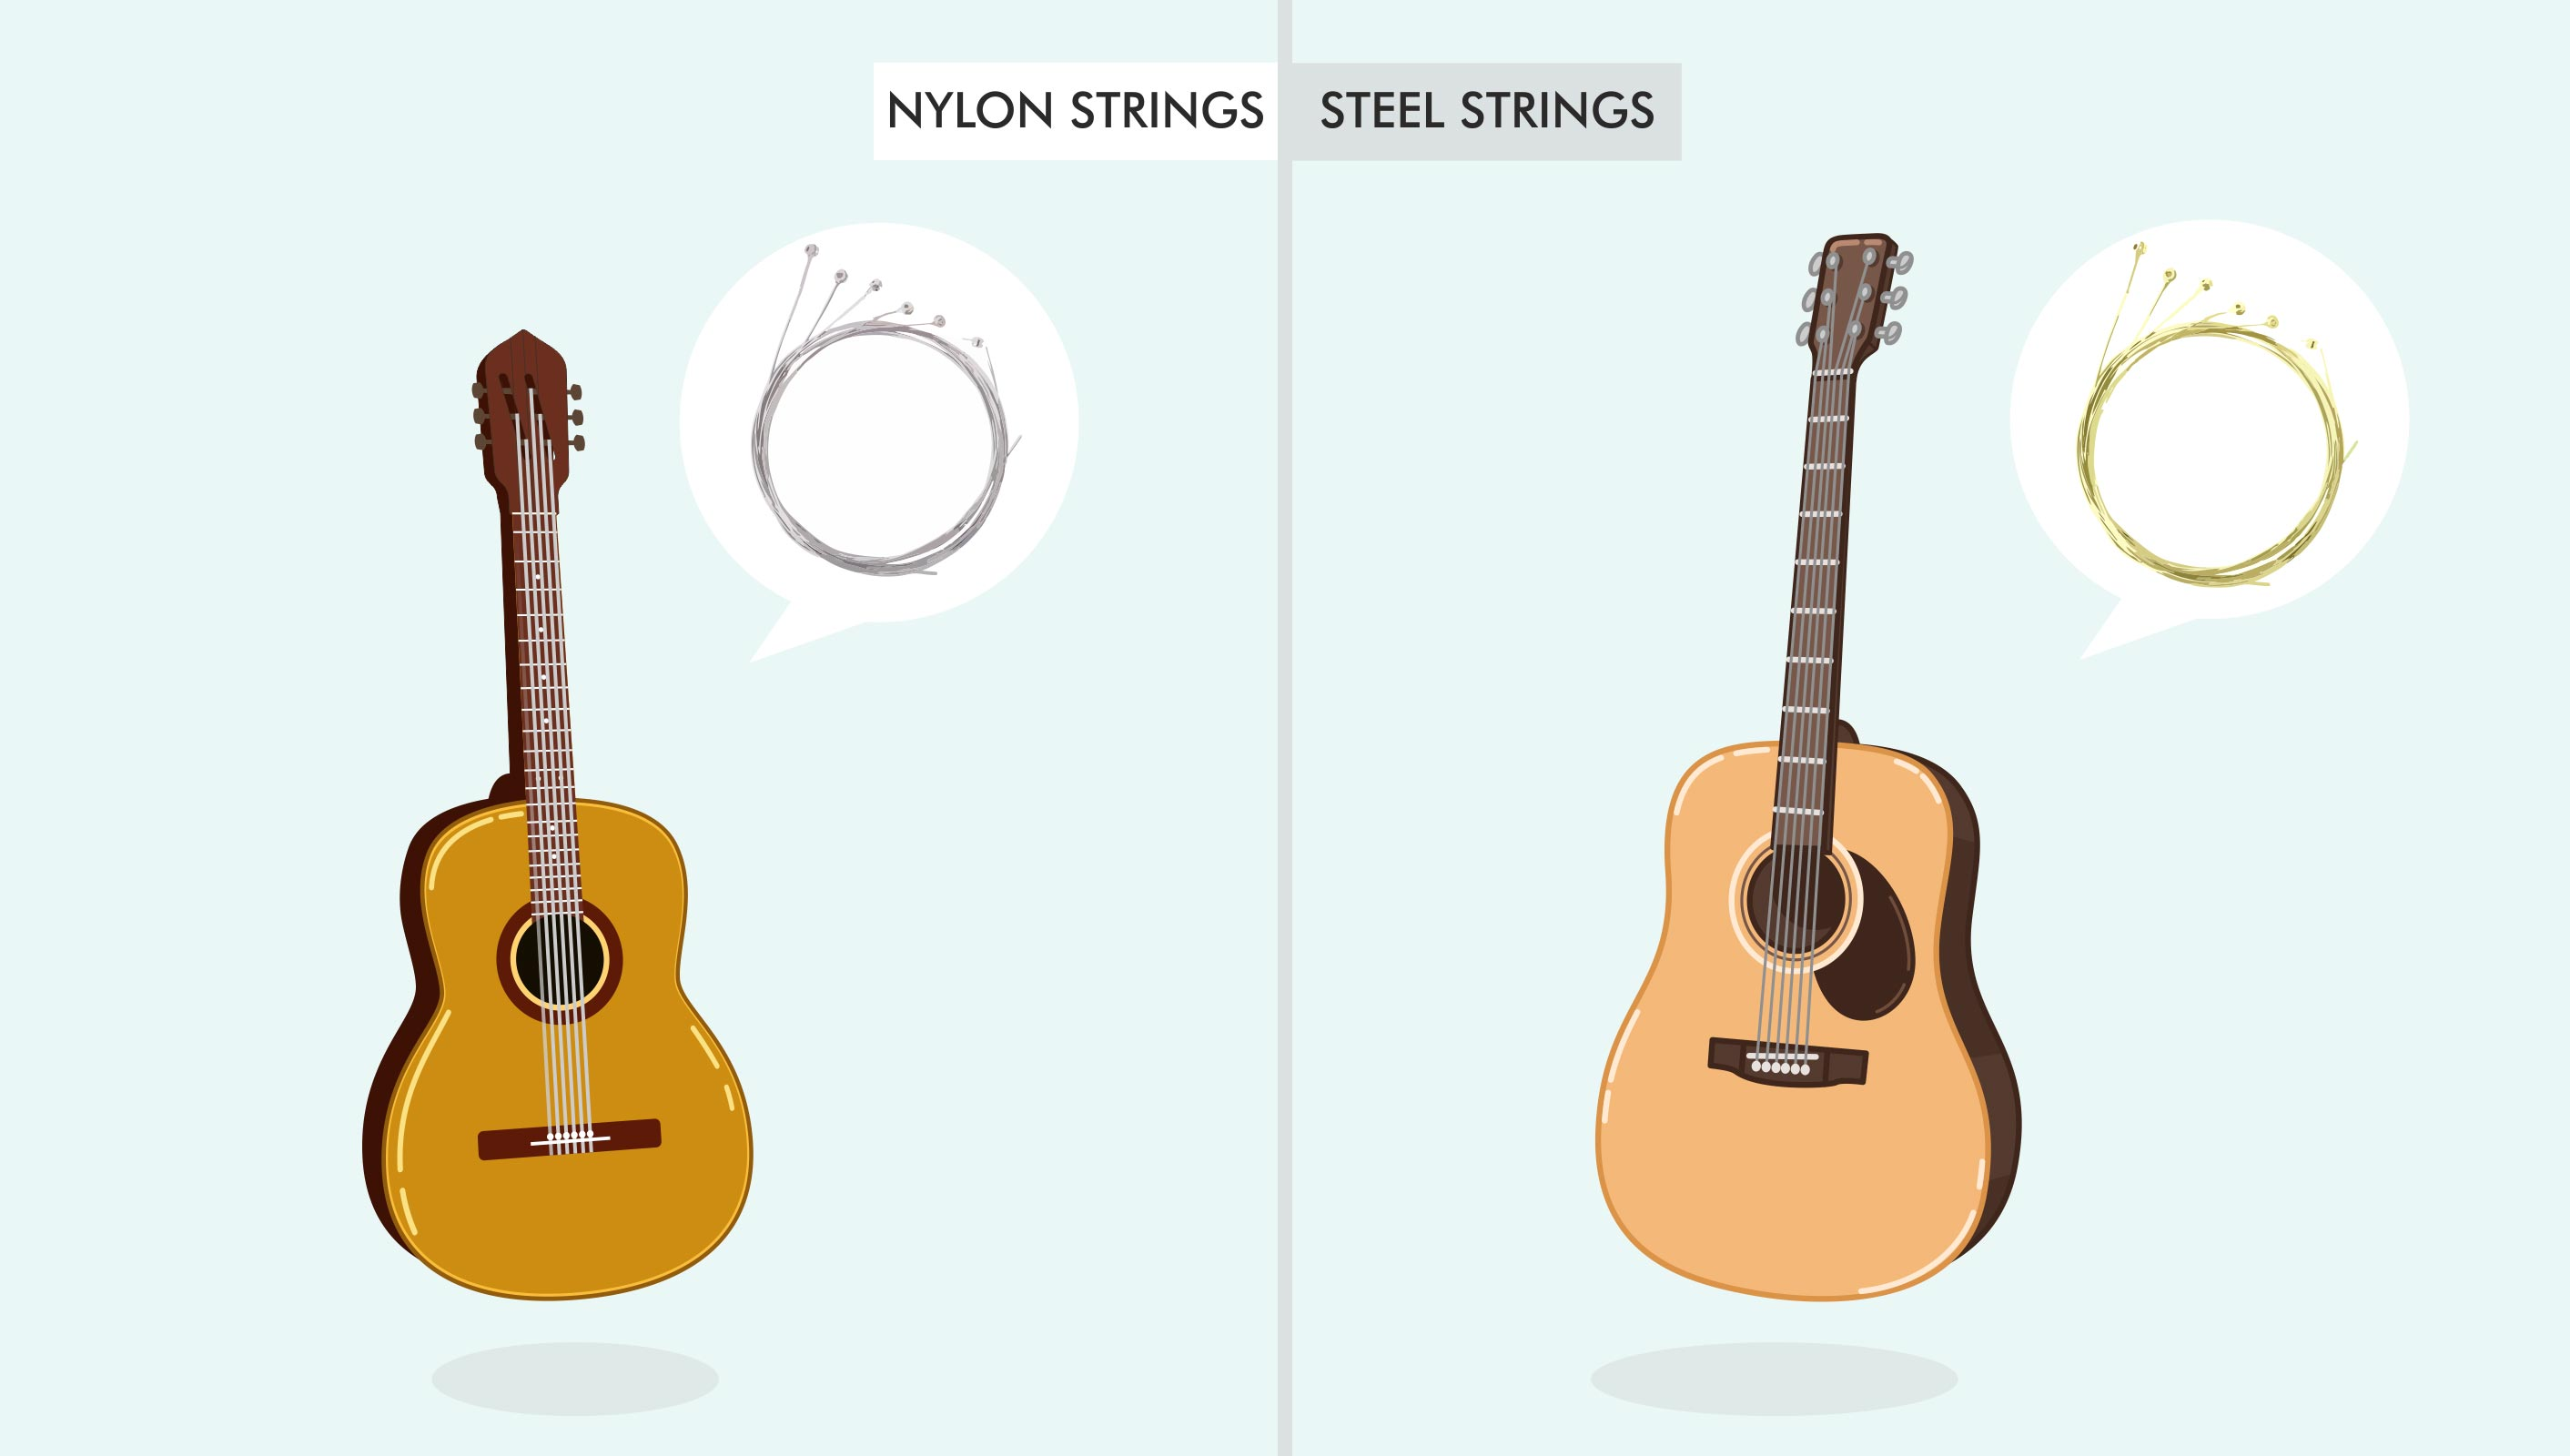 Classical Guitar vs Steel String Guitar